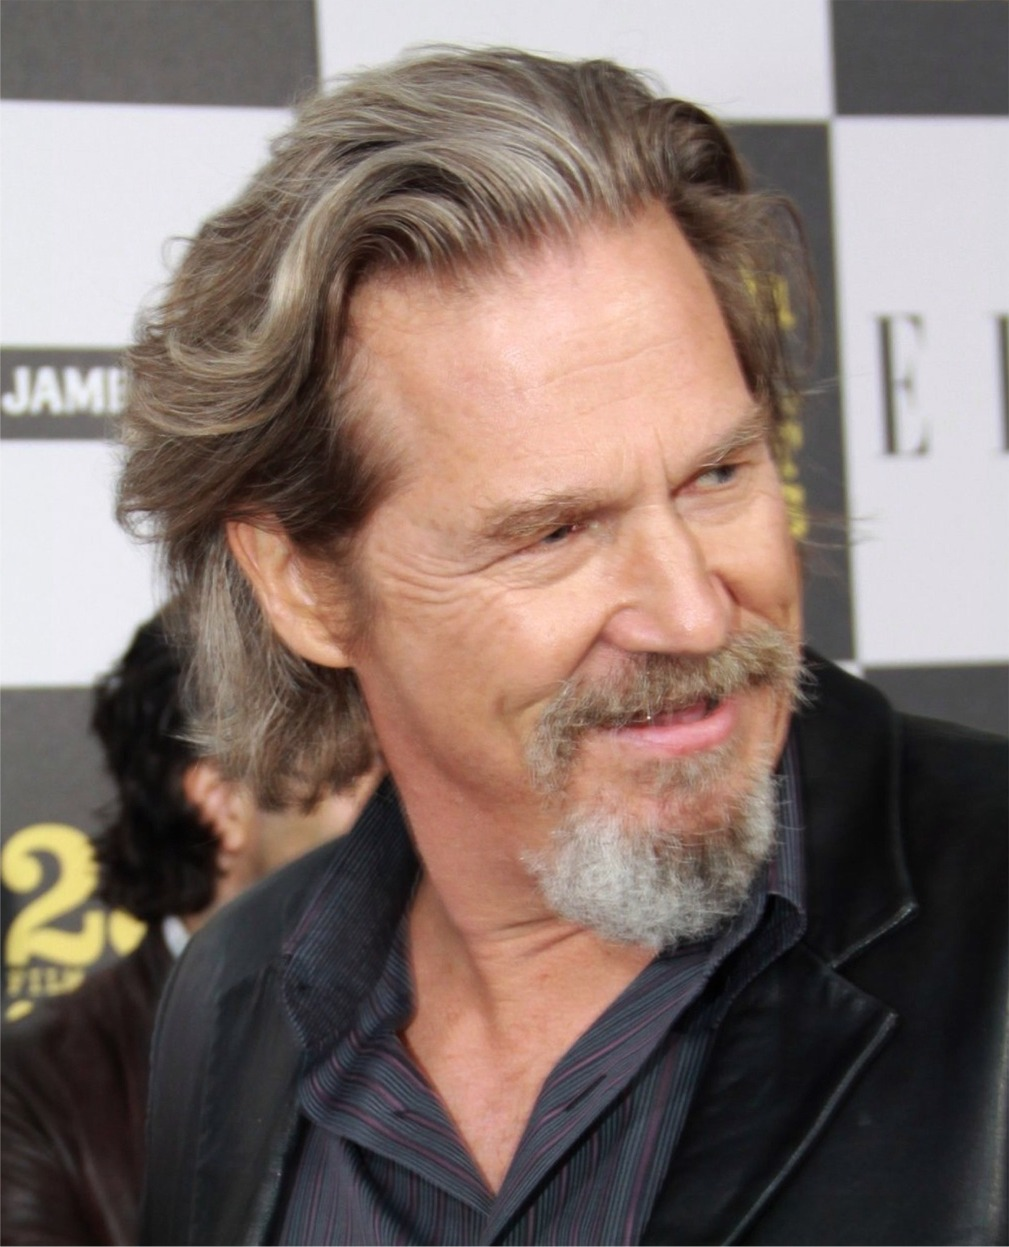 file:jeff bridges cropped 2010.jpg - wikimedia commons